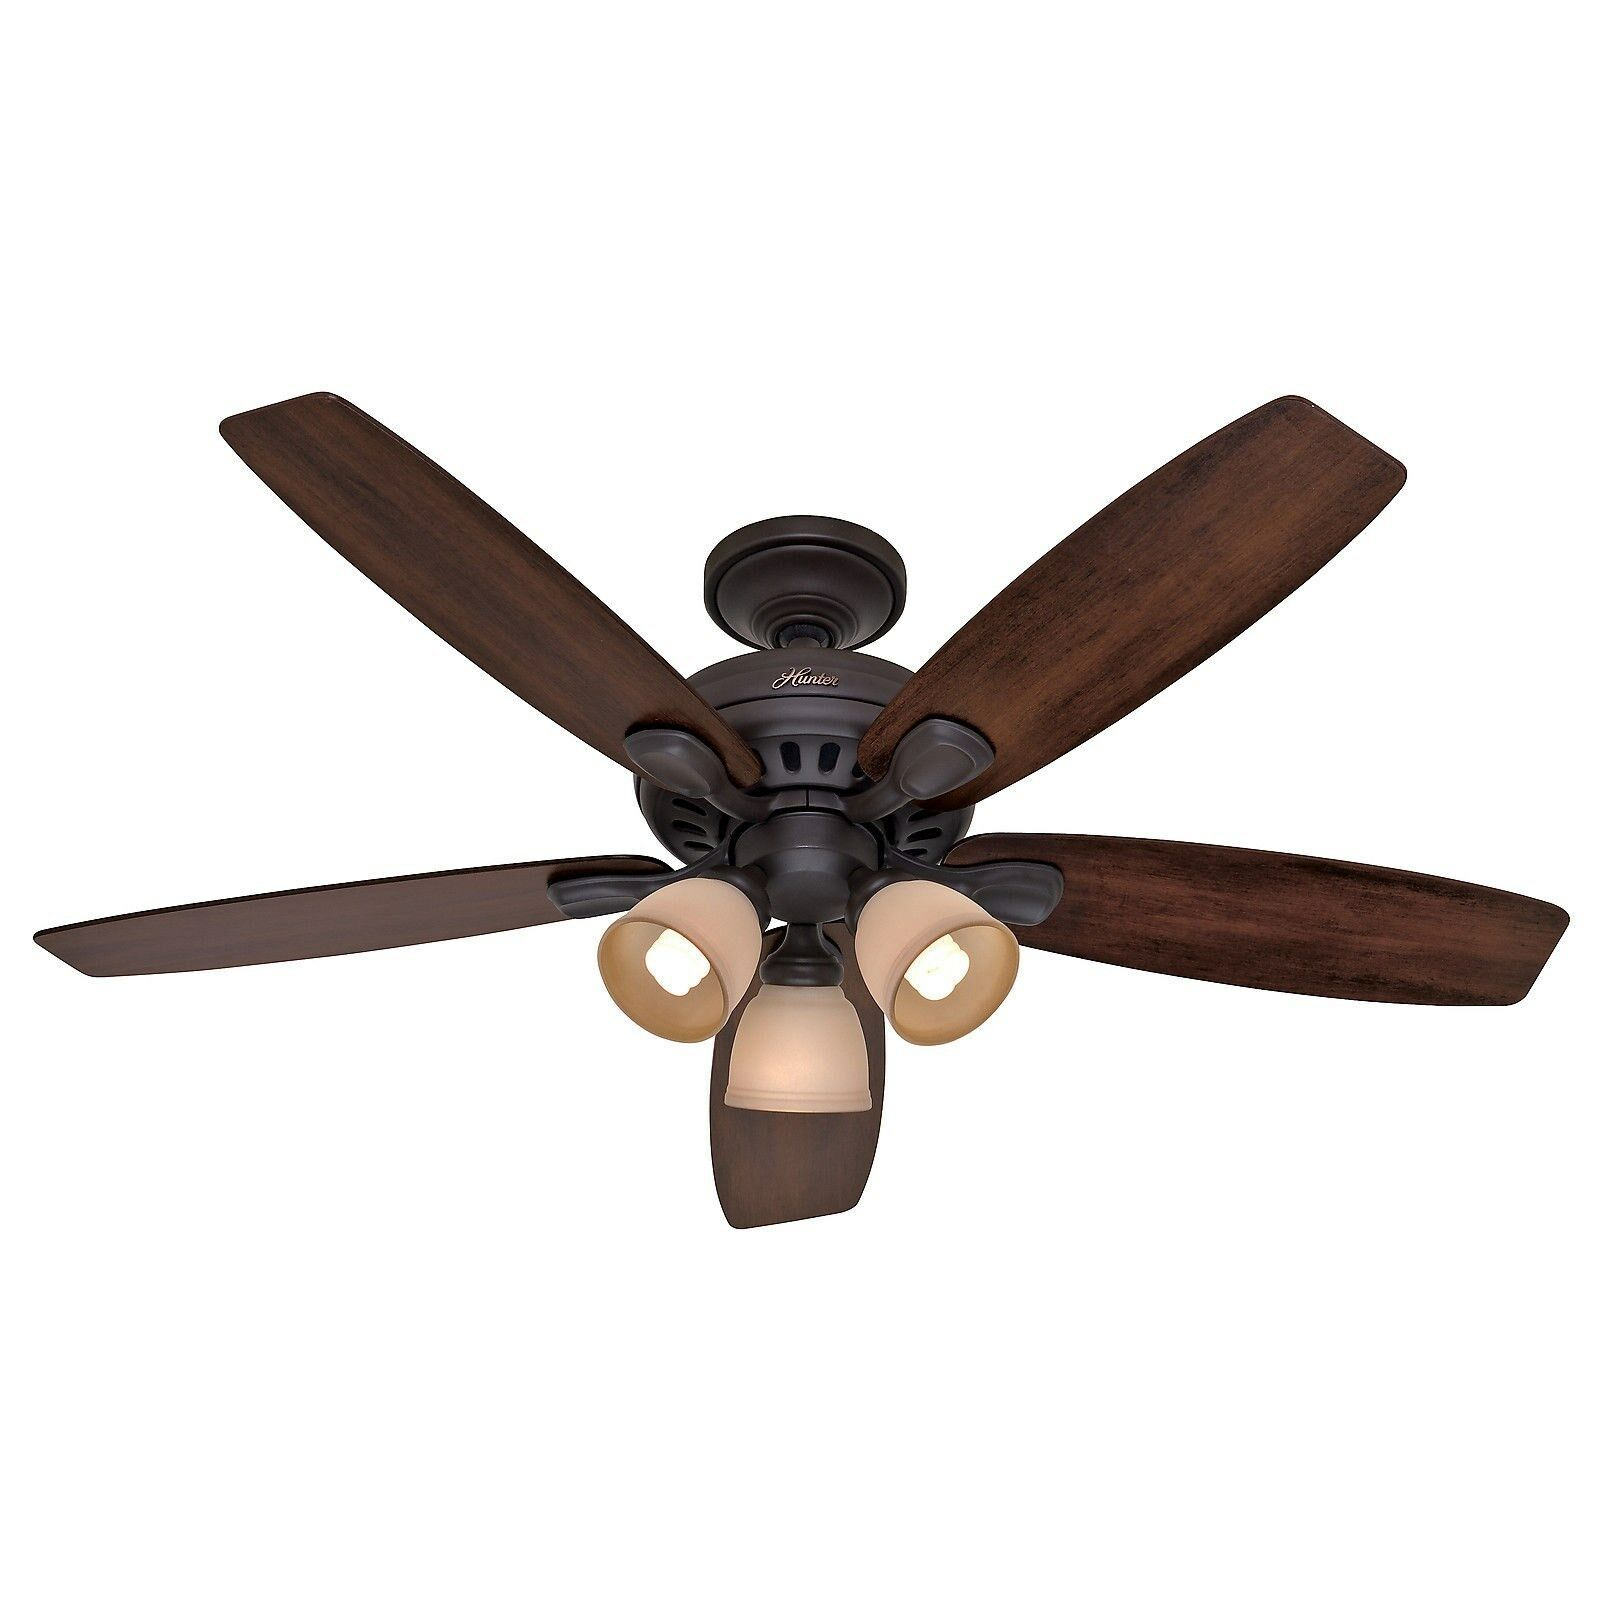 Lighting Fans: Hunter 52 In. New Bronze Ceiling Fan With Light & Remote